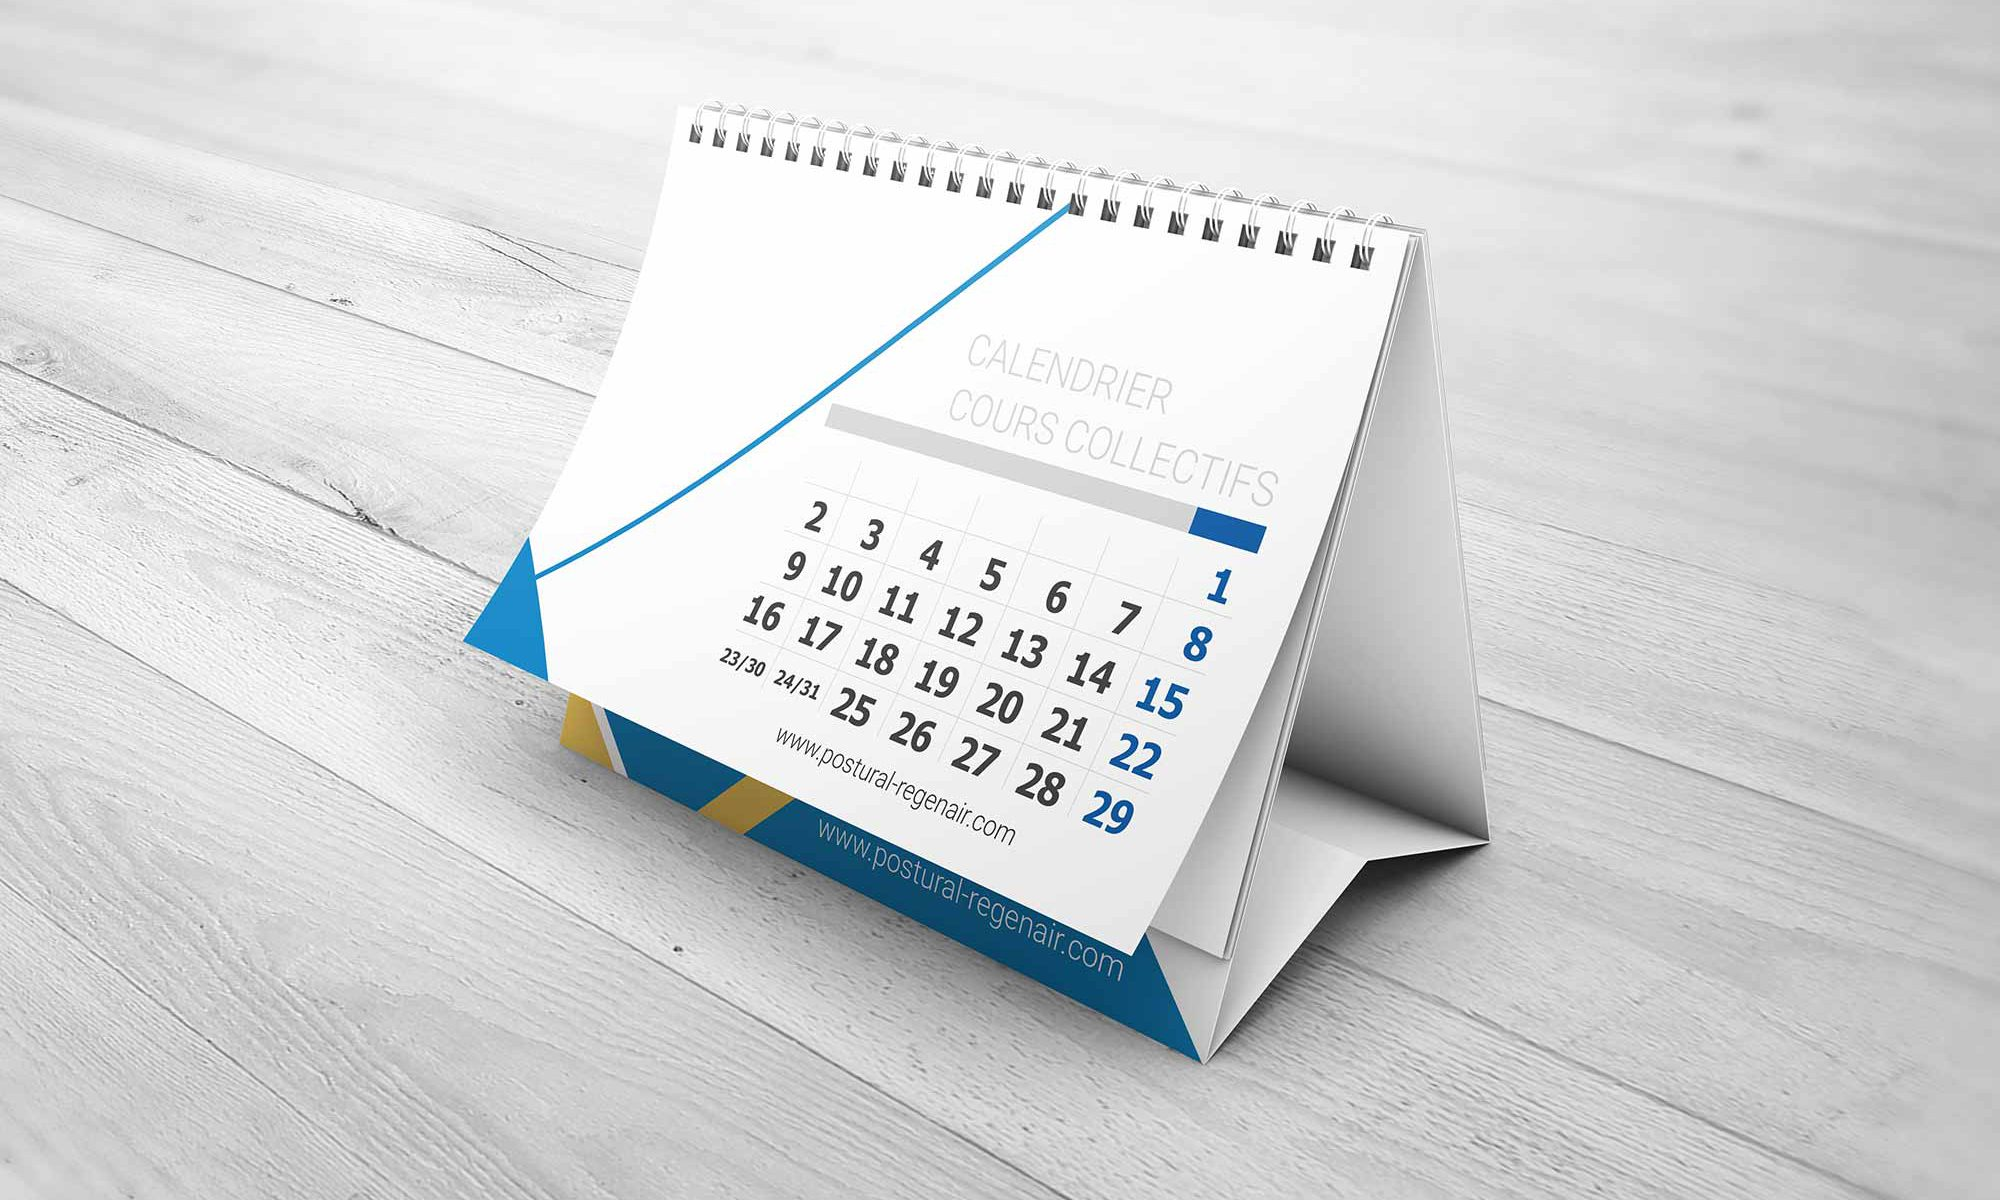 calendrier-cours-collectifs_rentree